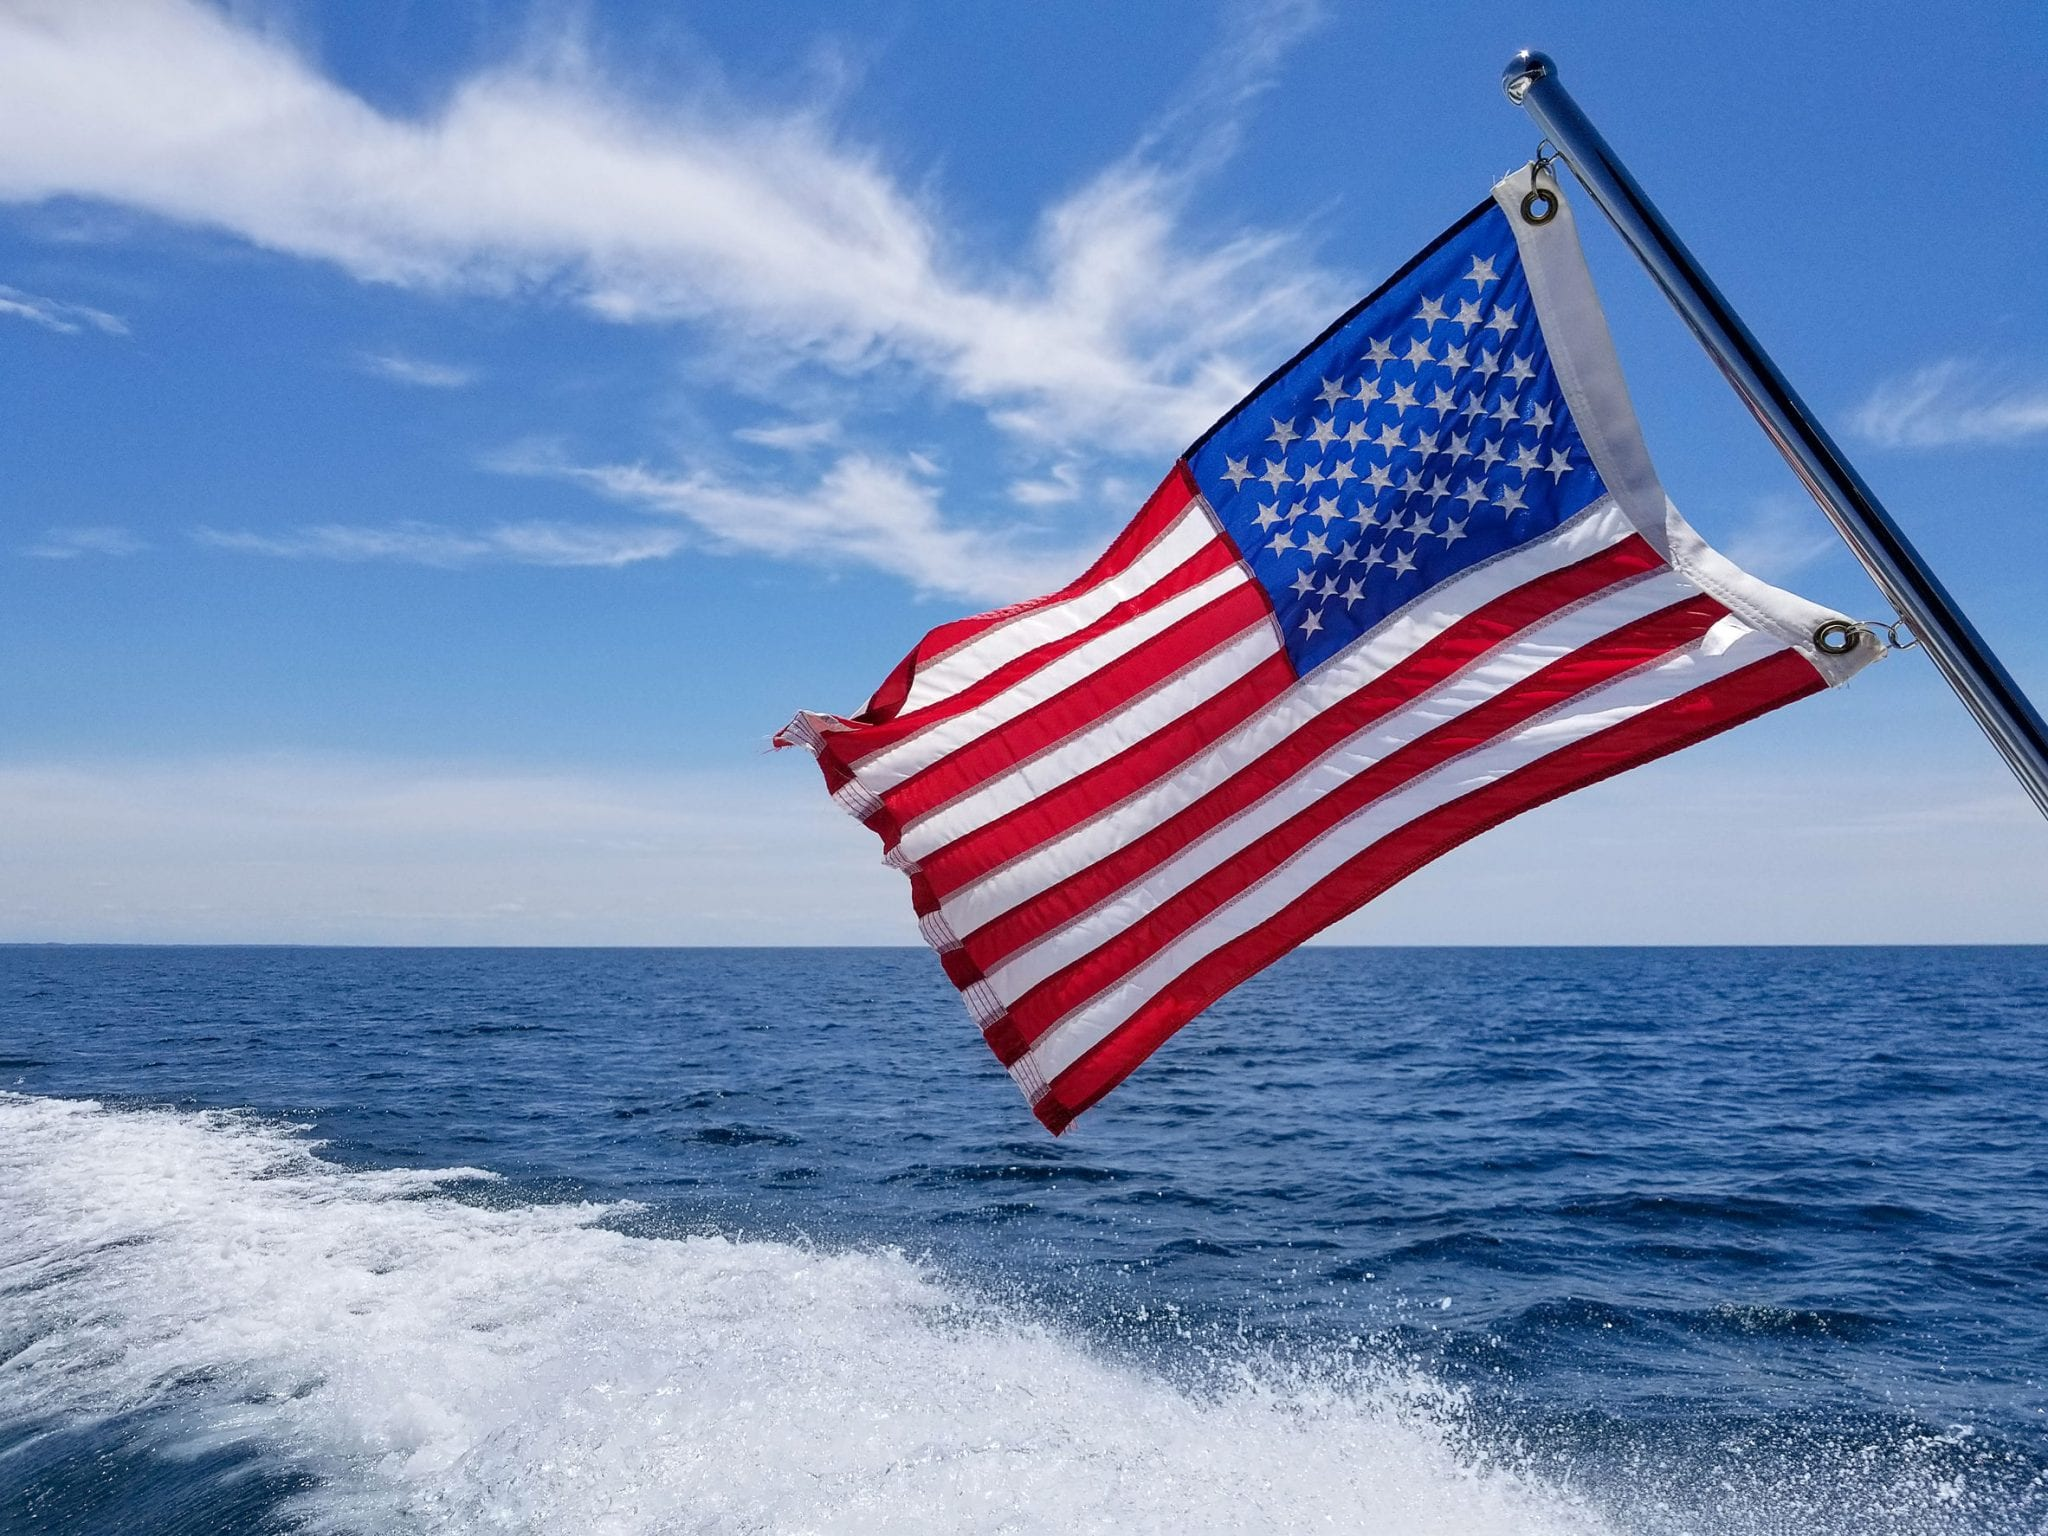 Celebrating the 4th on Your Boat in TX? Careful What You Drink...